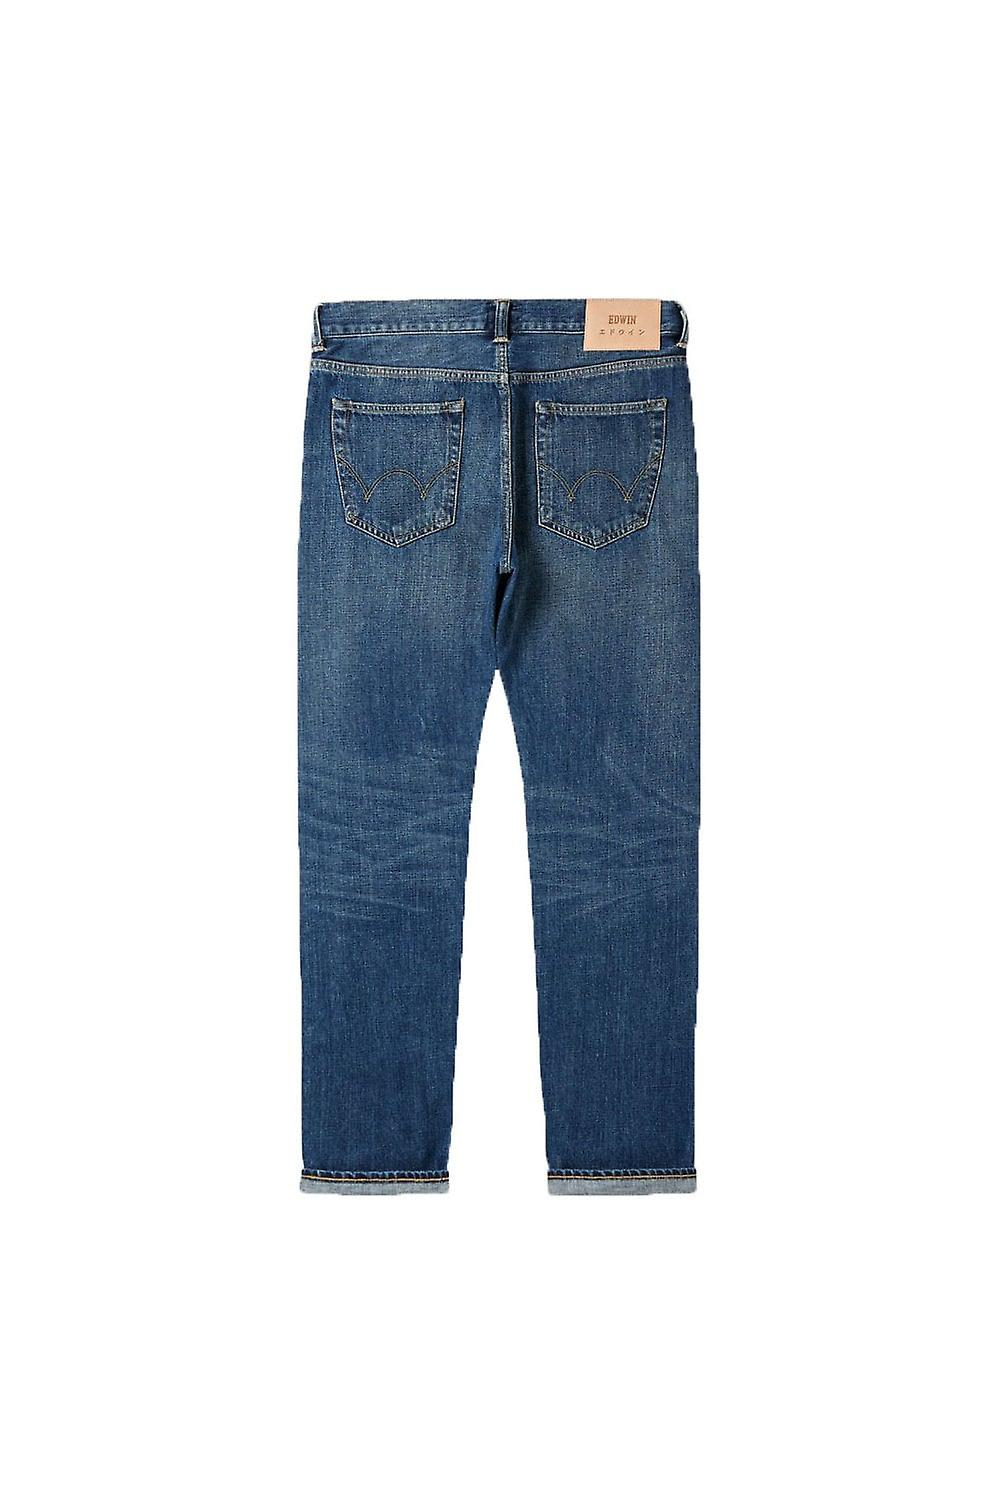 Edwin ED-55 Regular Tapered Red Listed Selvage Jeans (Satomi Wash)